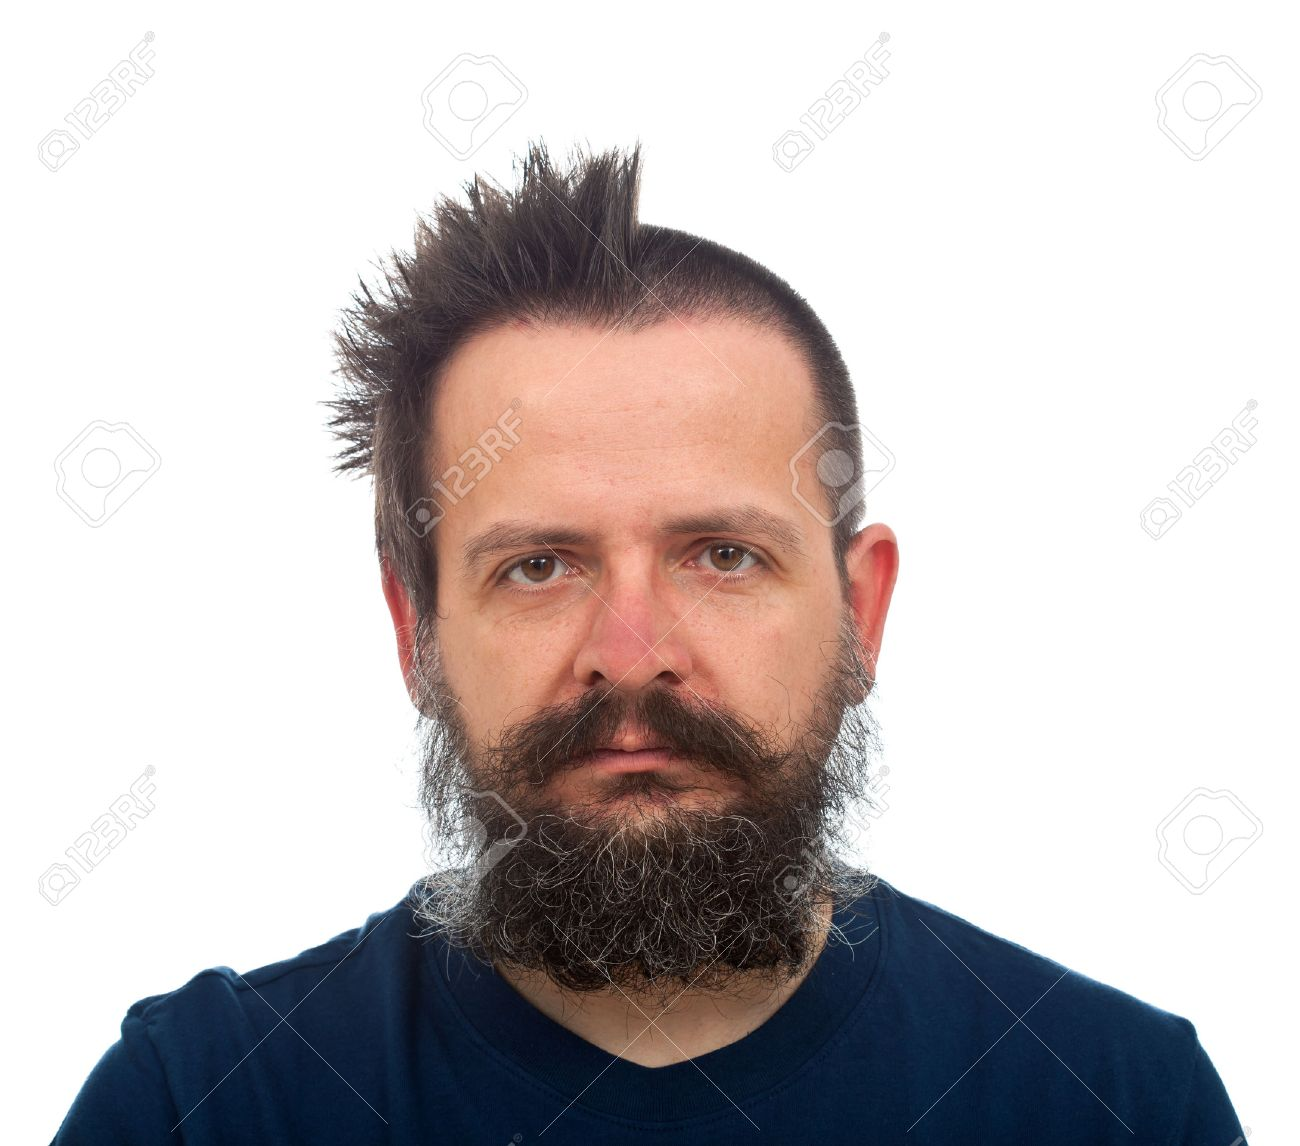 Guy With Large Beard Funny Haircut Half Punk Half Military Stock